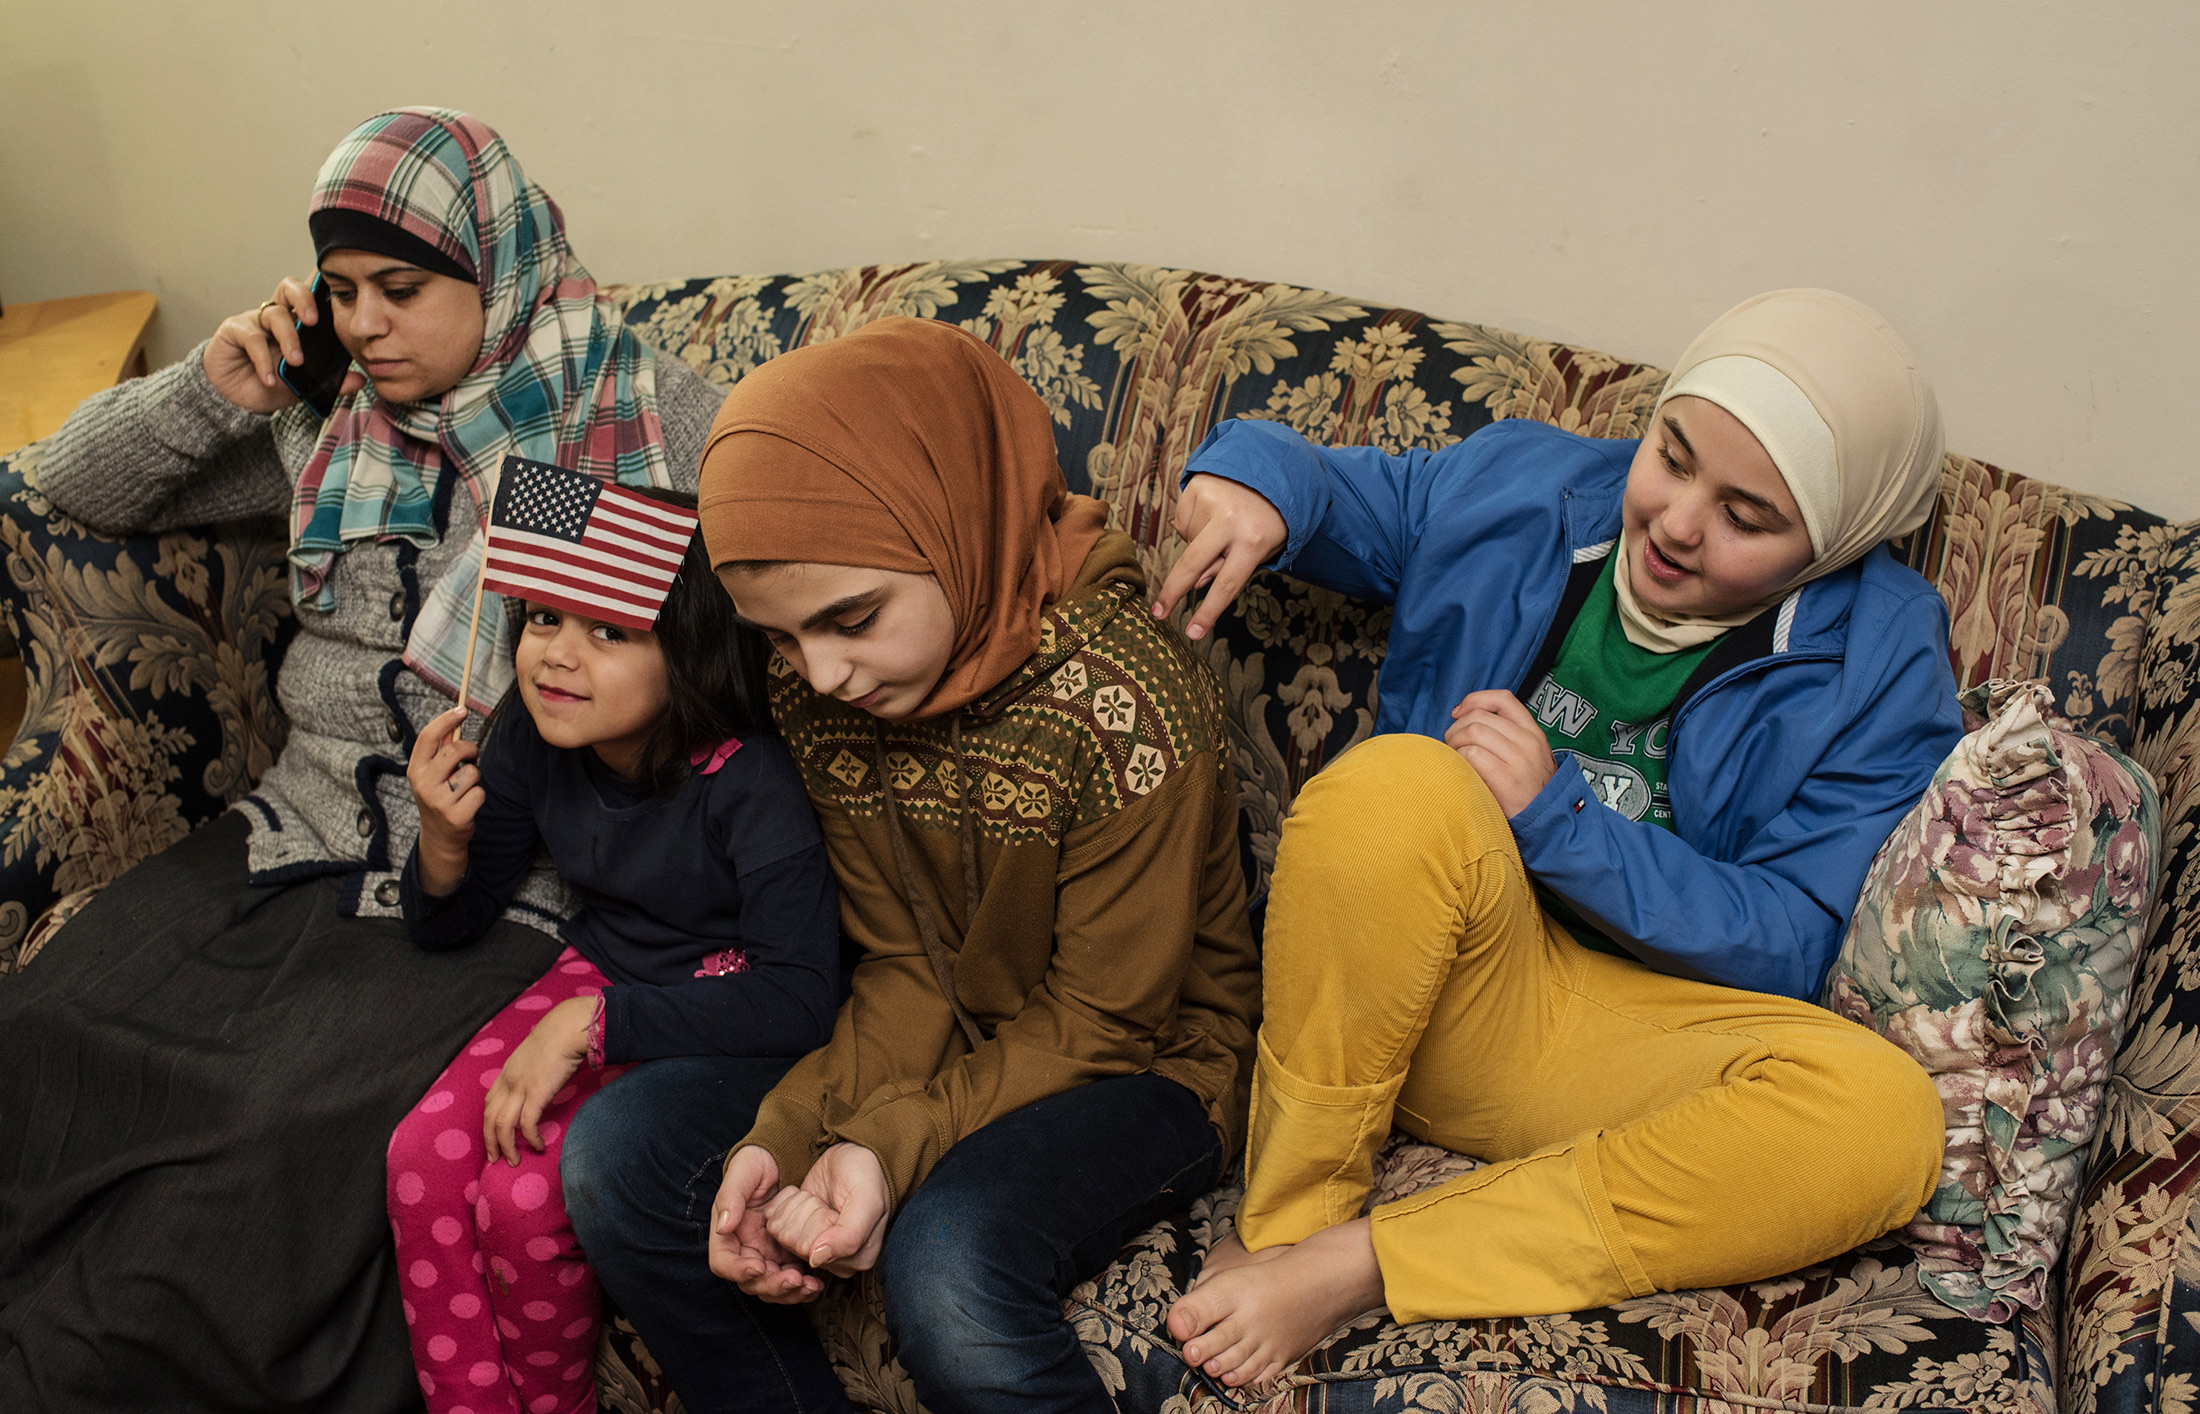 For many refugee families, the children rapidly surpass their parents' in english abilities. They become their parent's liaison with the world.jpg